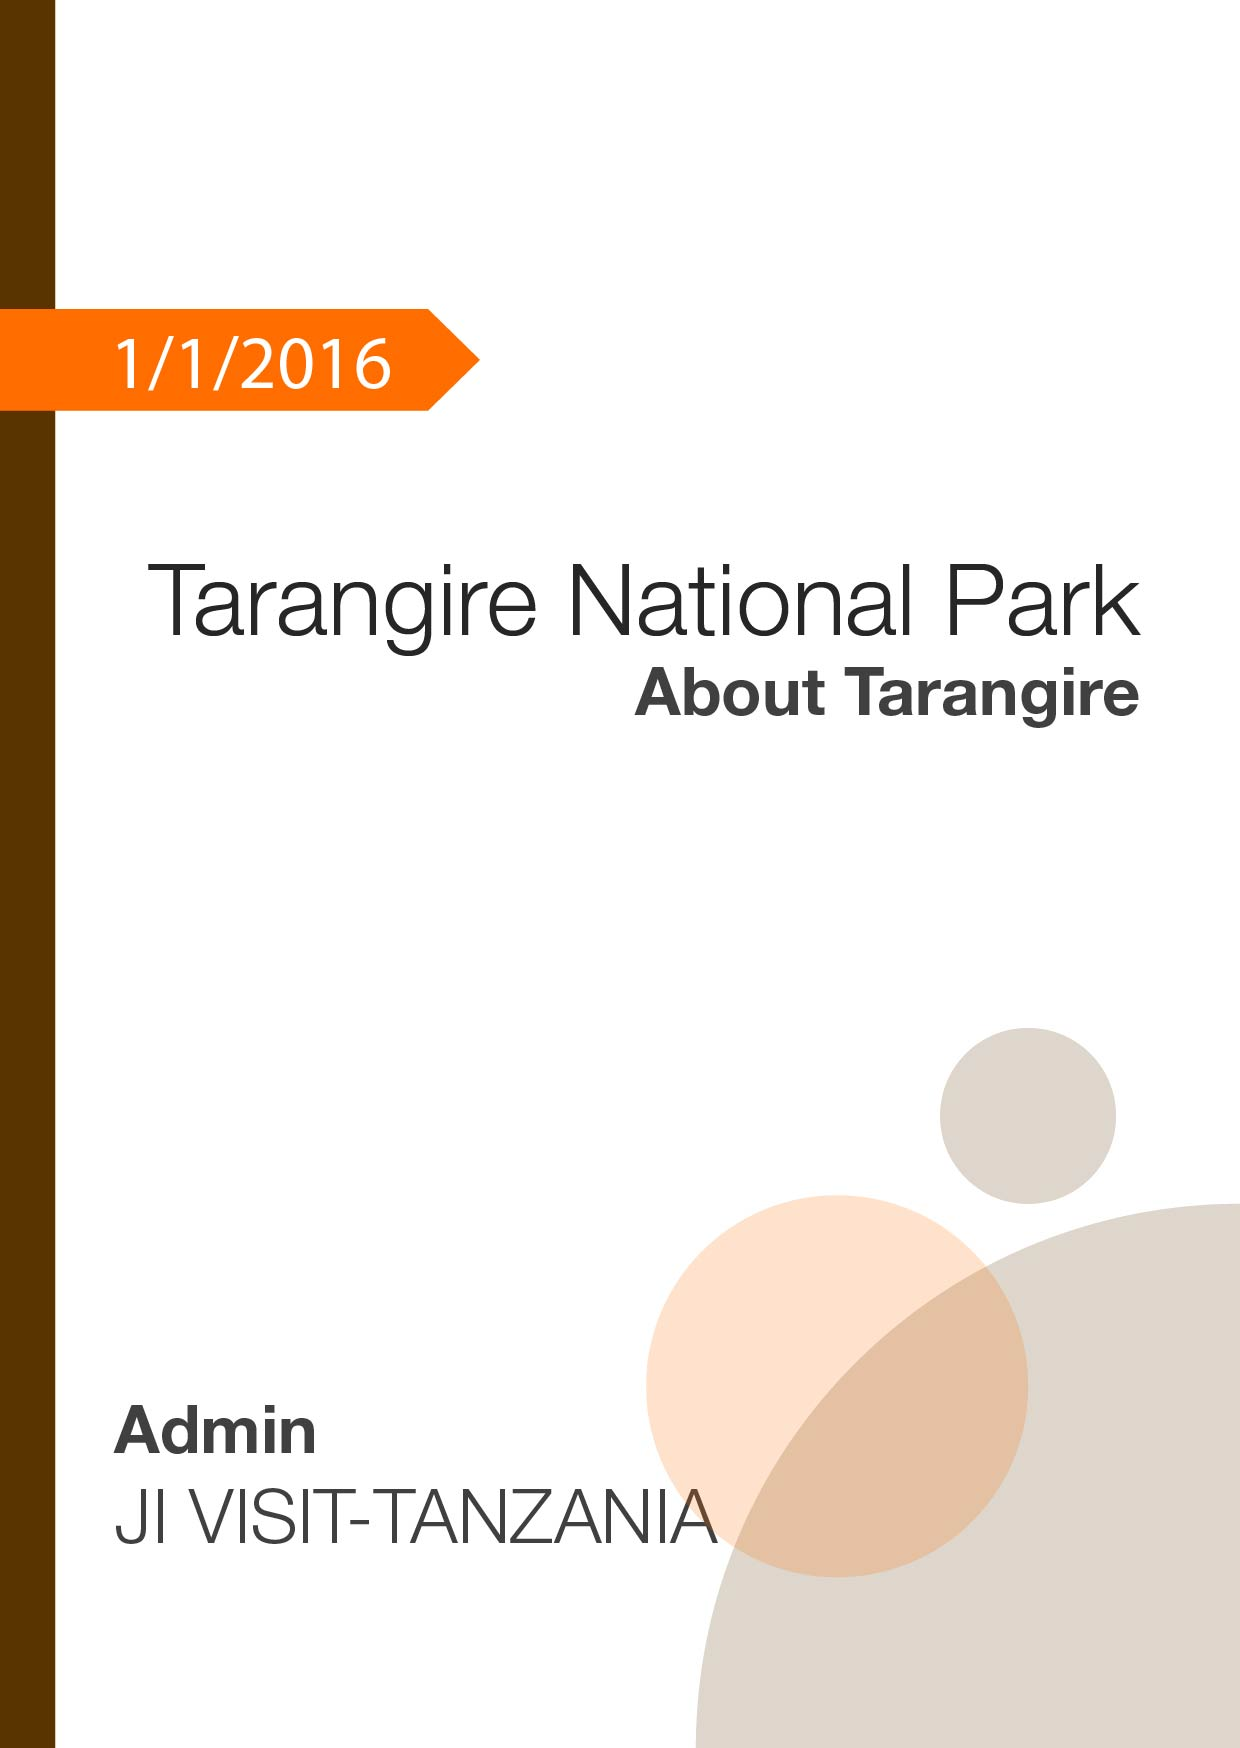 Tarangire National Park – About Tarangire